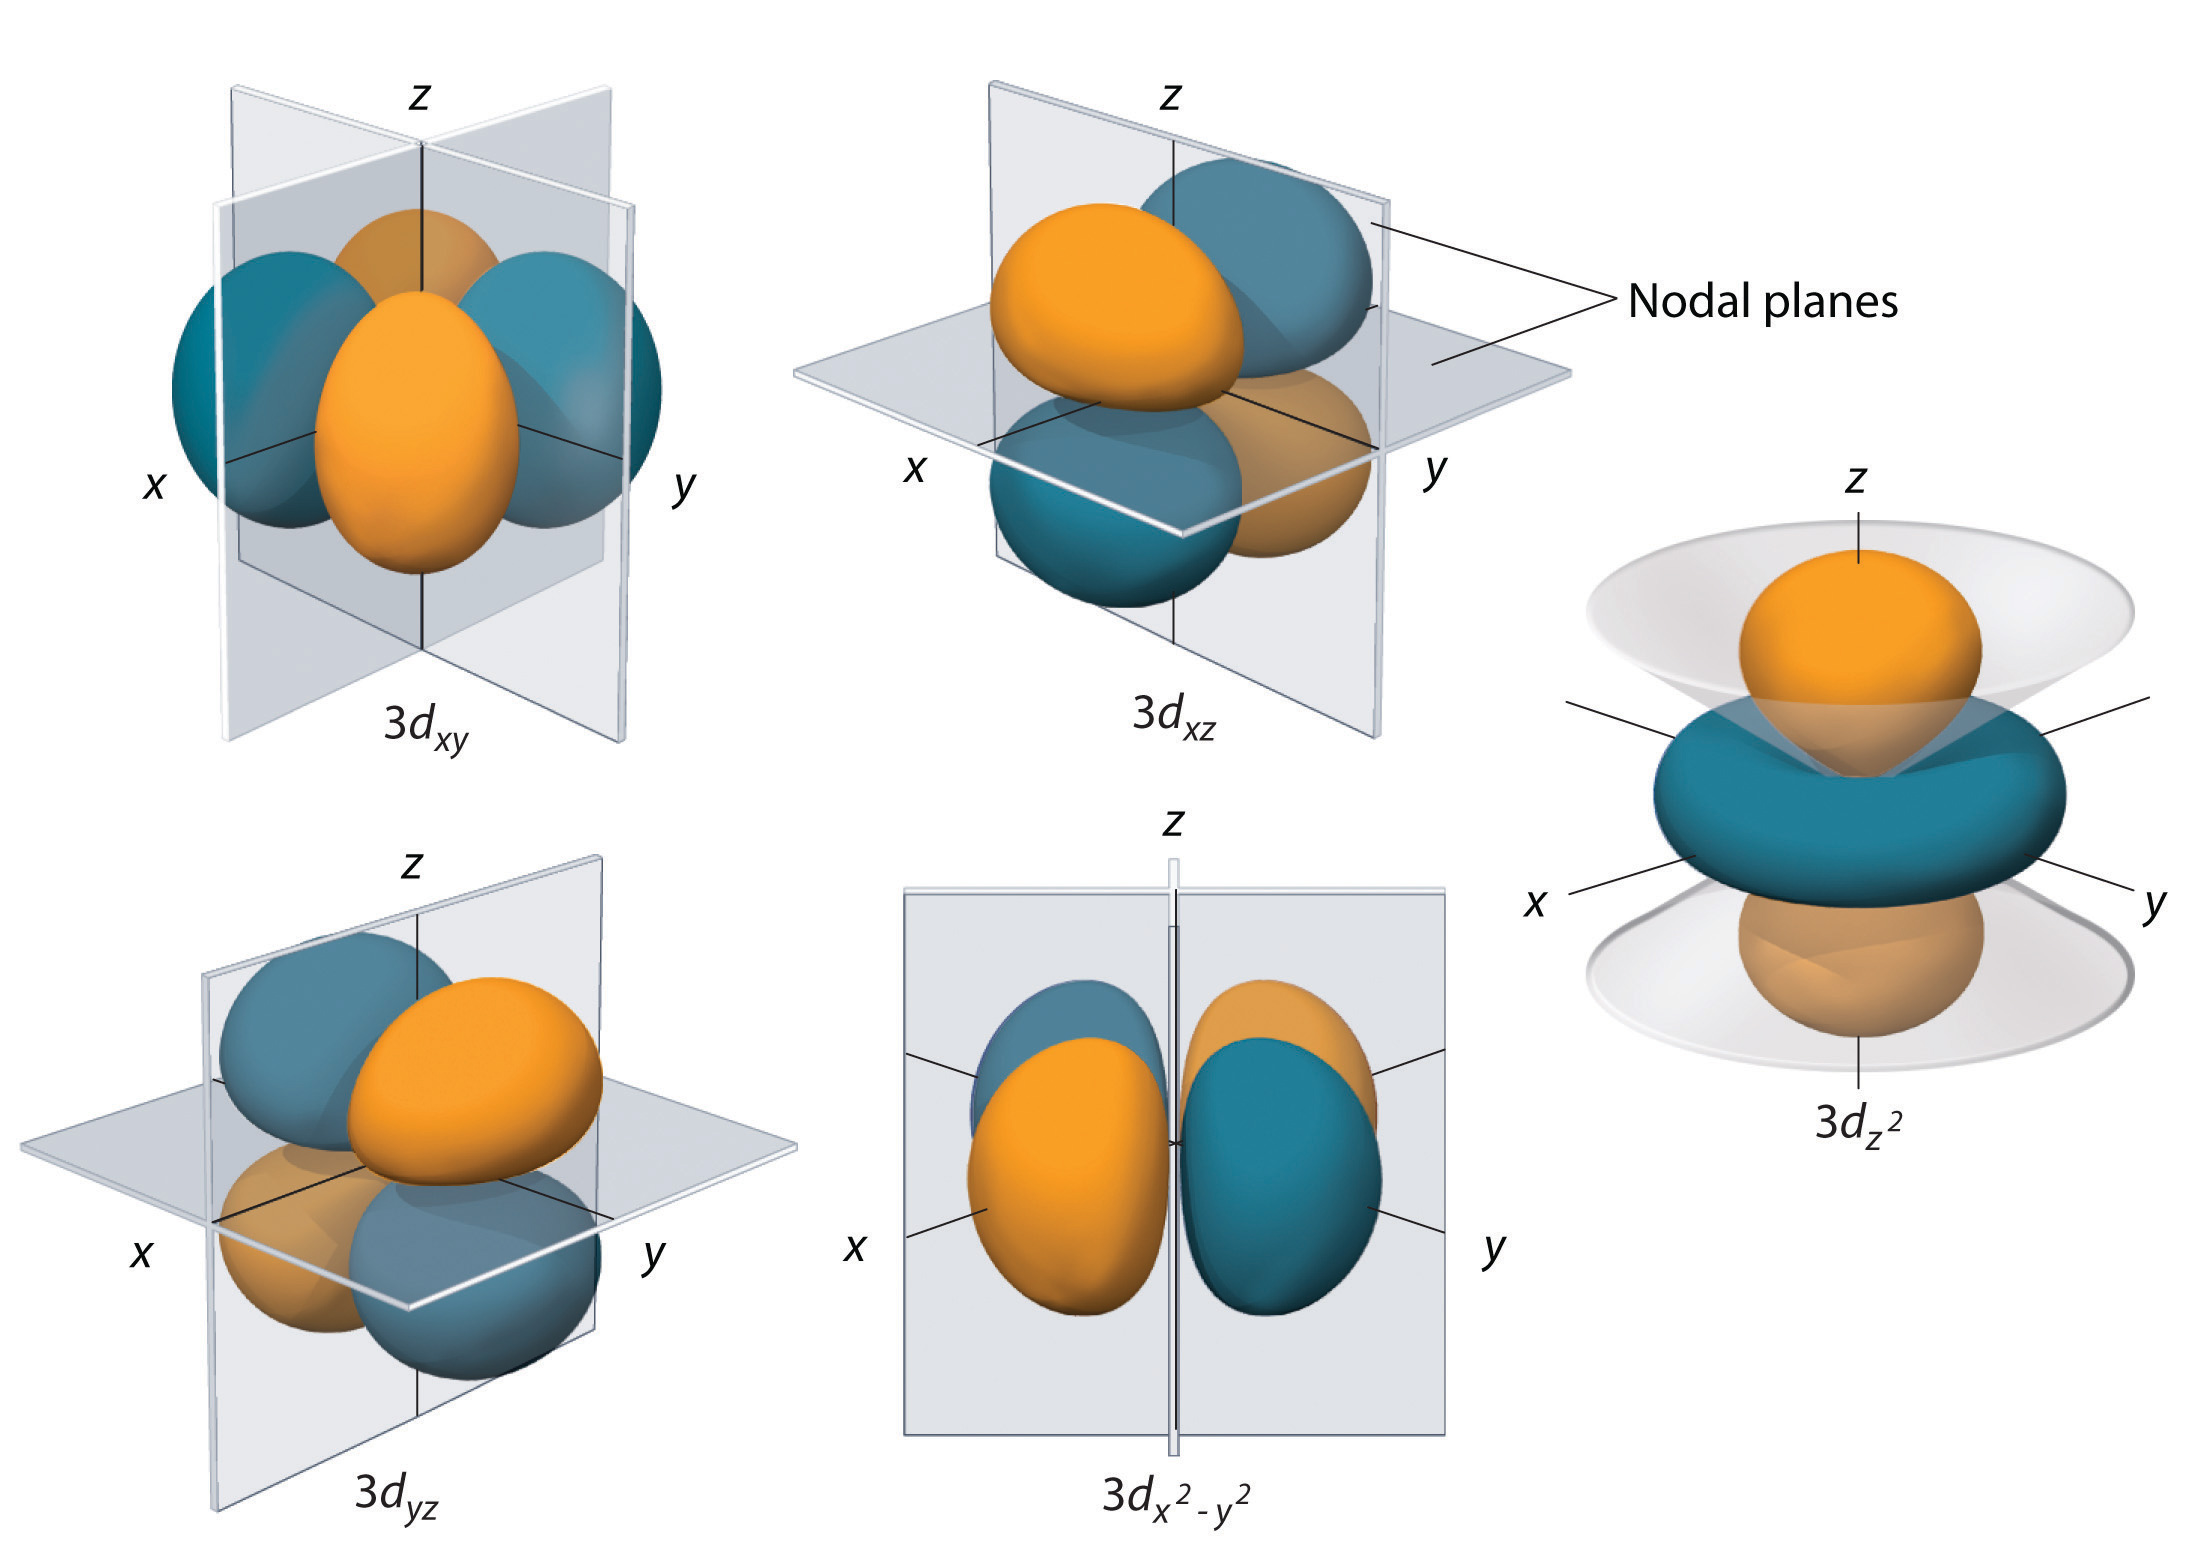 molecular orbital diagram for h2 wire car stereo atomic orbitals and their energies